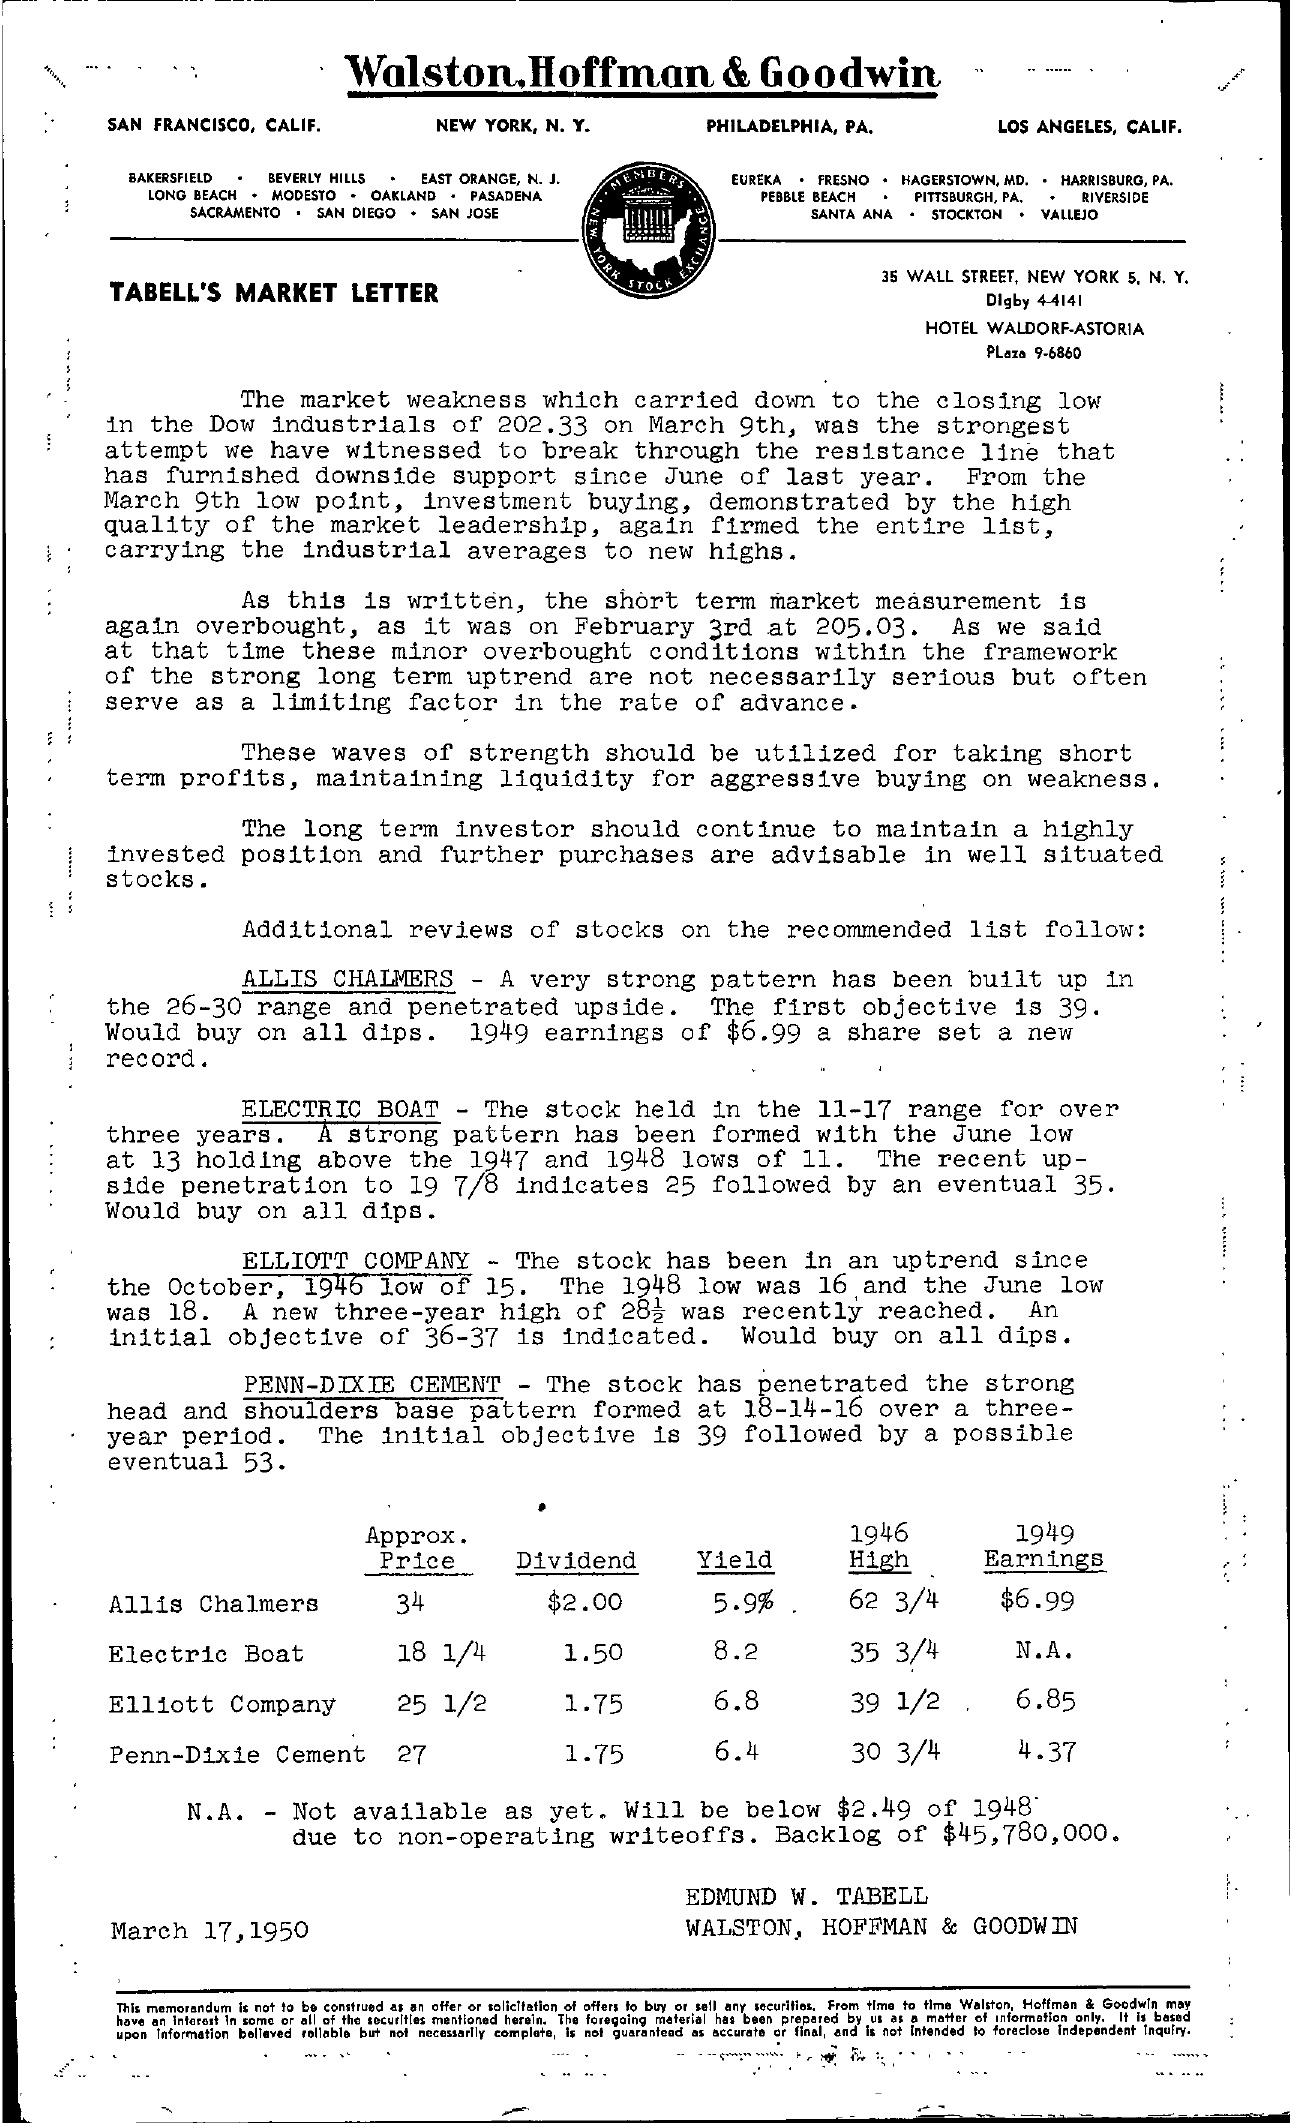 Tabell's Market Letter - March 17, 1950